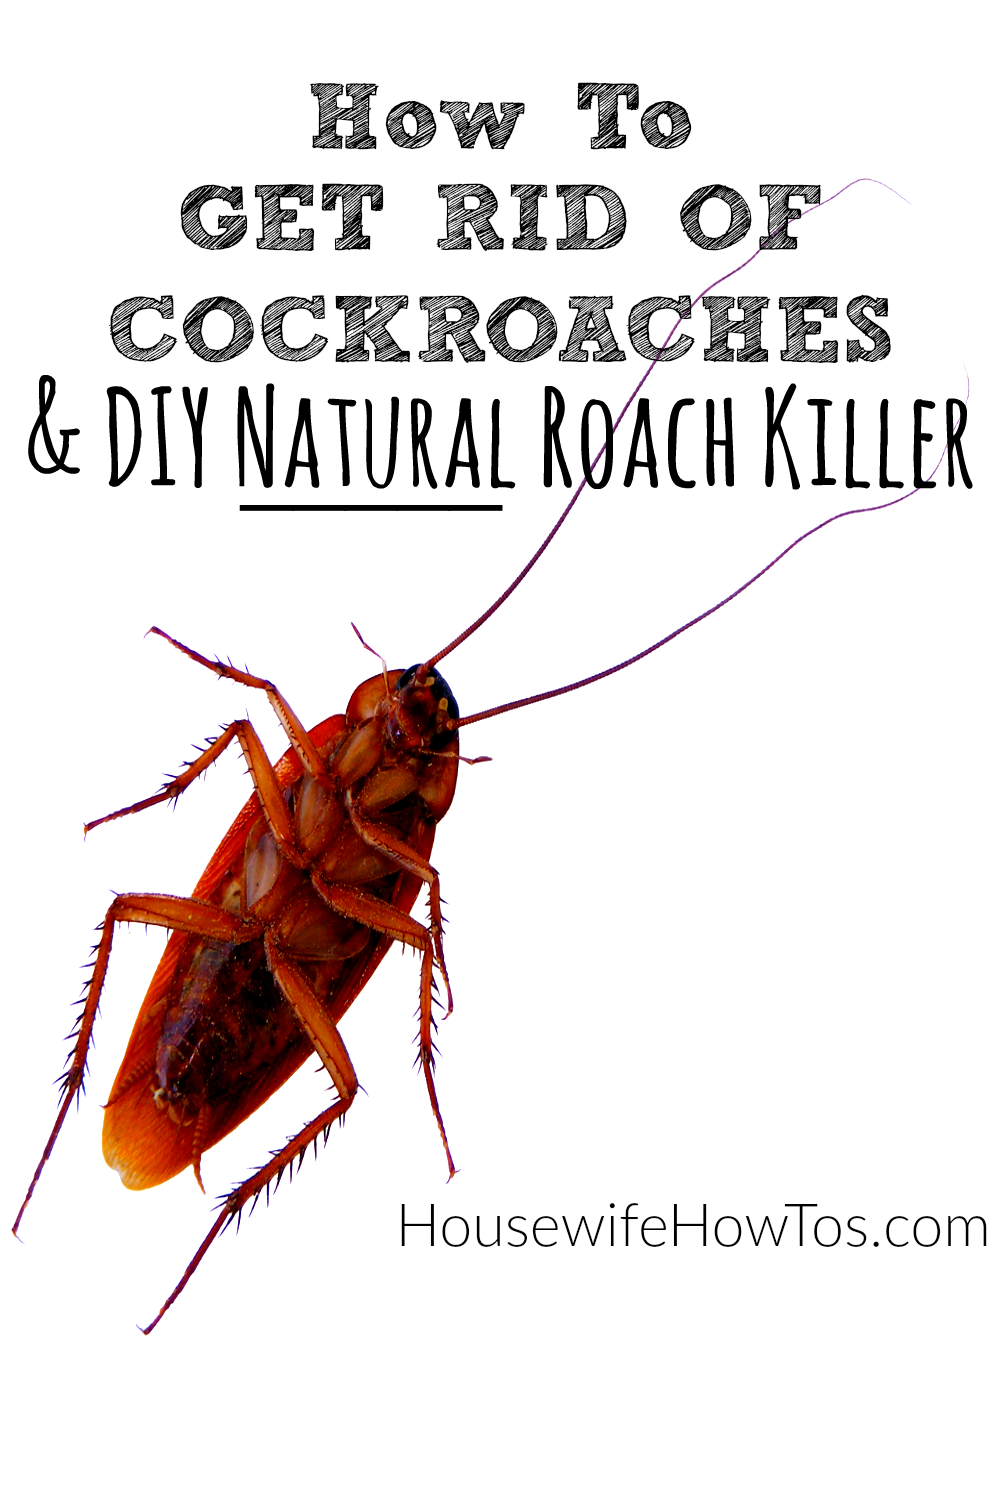 follow these steps, and use the diy natural roach killer recipe, to